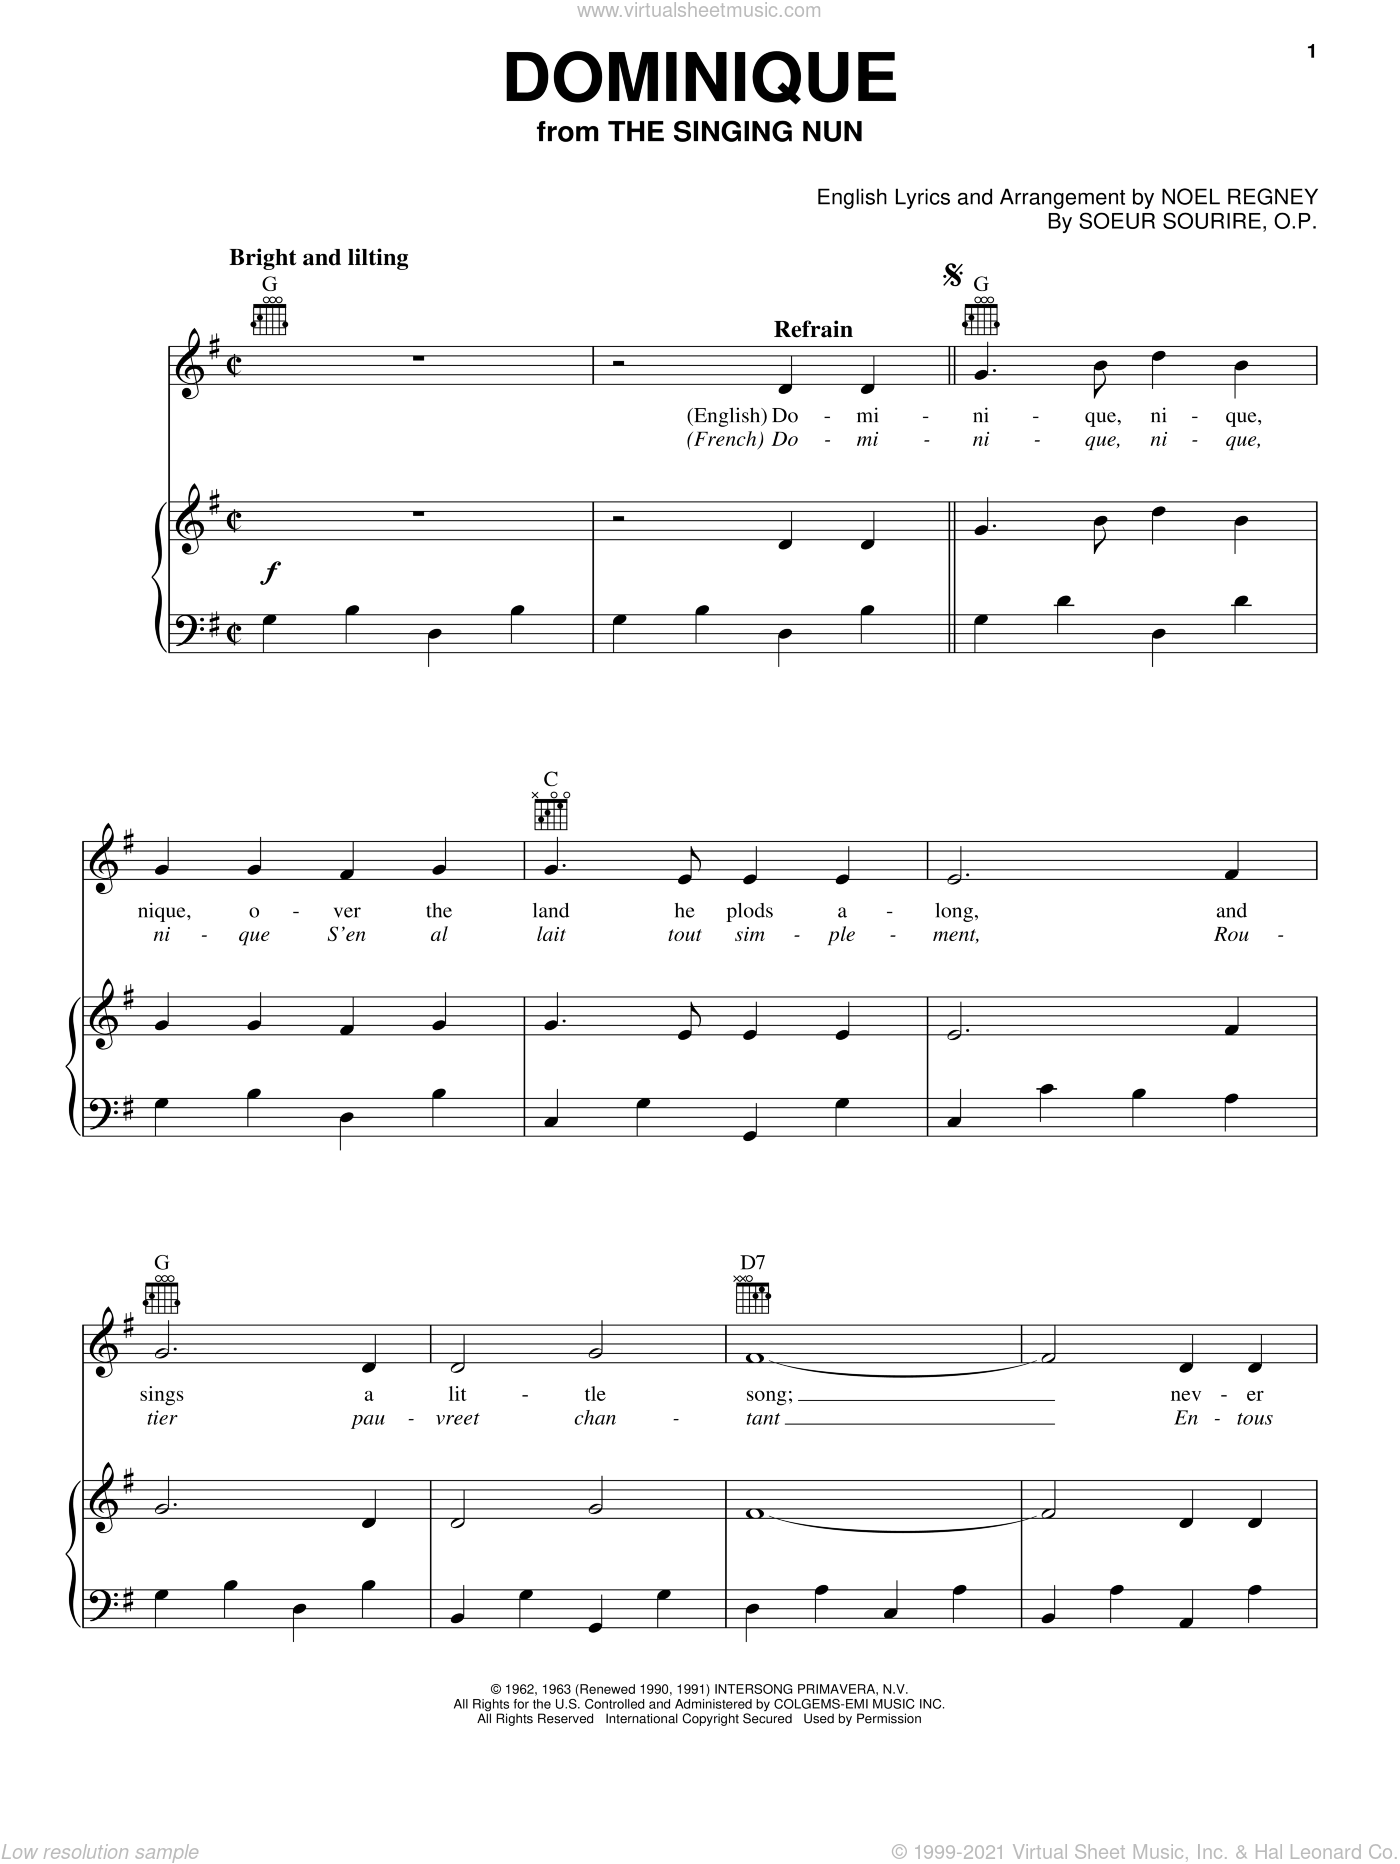 Dominique sheet music for voice, piano or guitar by Soeur Sourire, O.P.